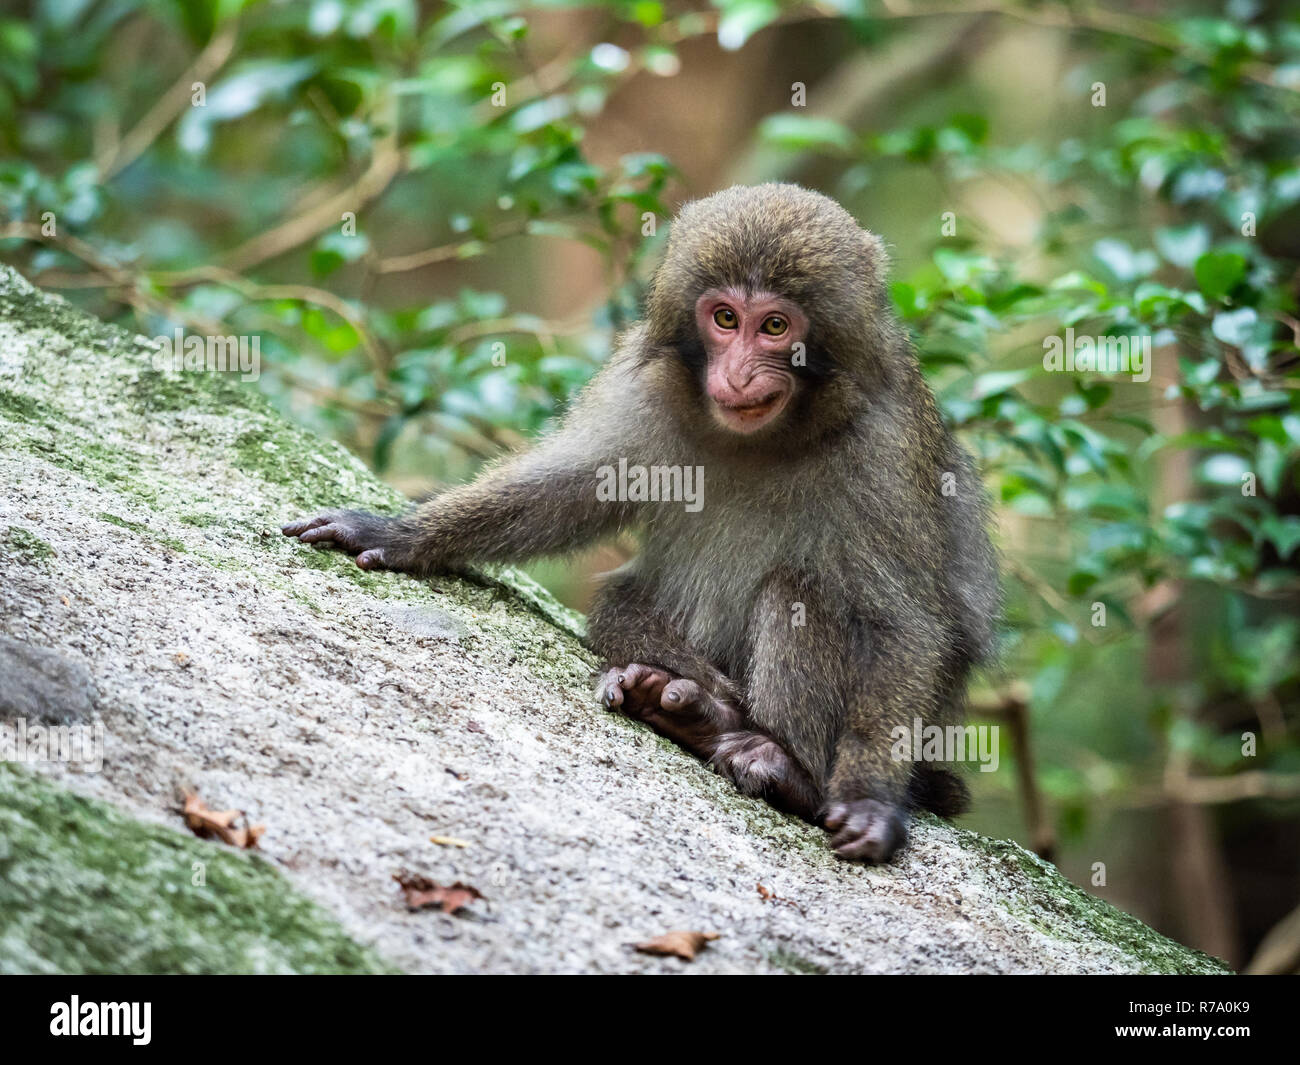 Yakushima macaques (Macaca fuscata yakui) in woodland in Western Yakushima, Japan. Stock Photo